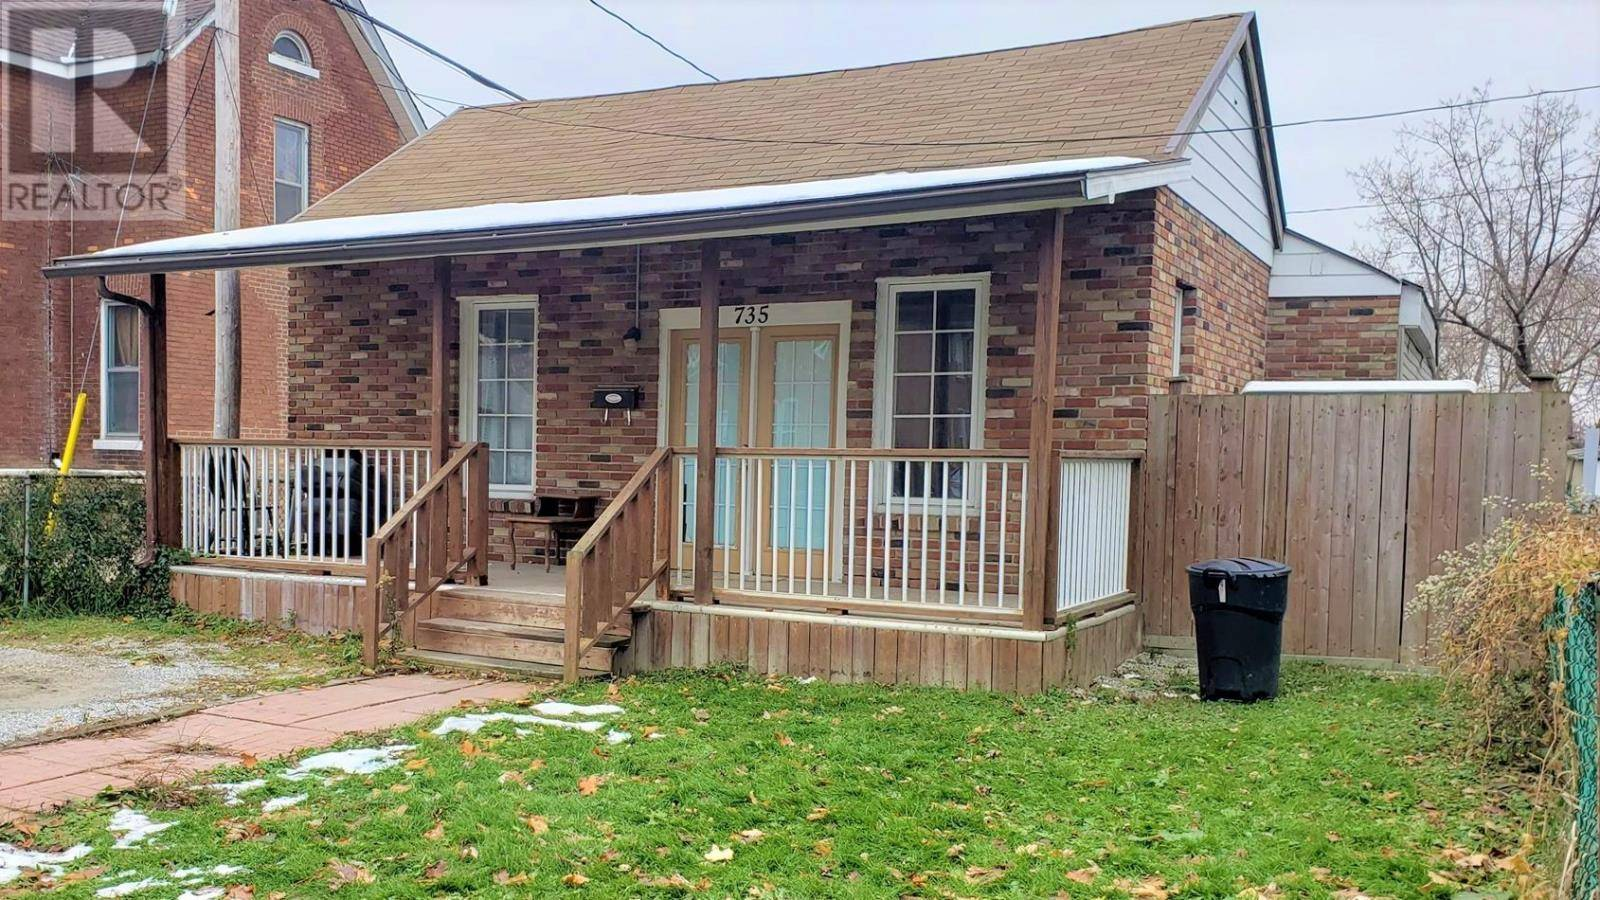 House for sale at 735 University Ave East Windsor Ontario - MLS: 19028575